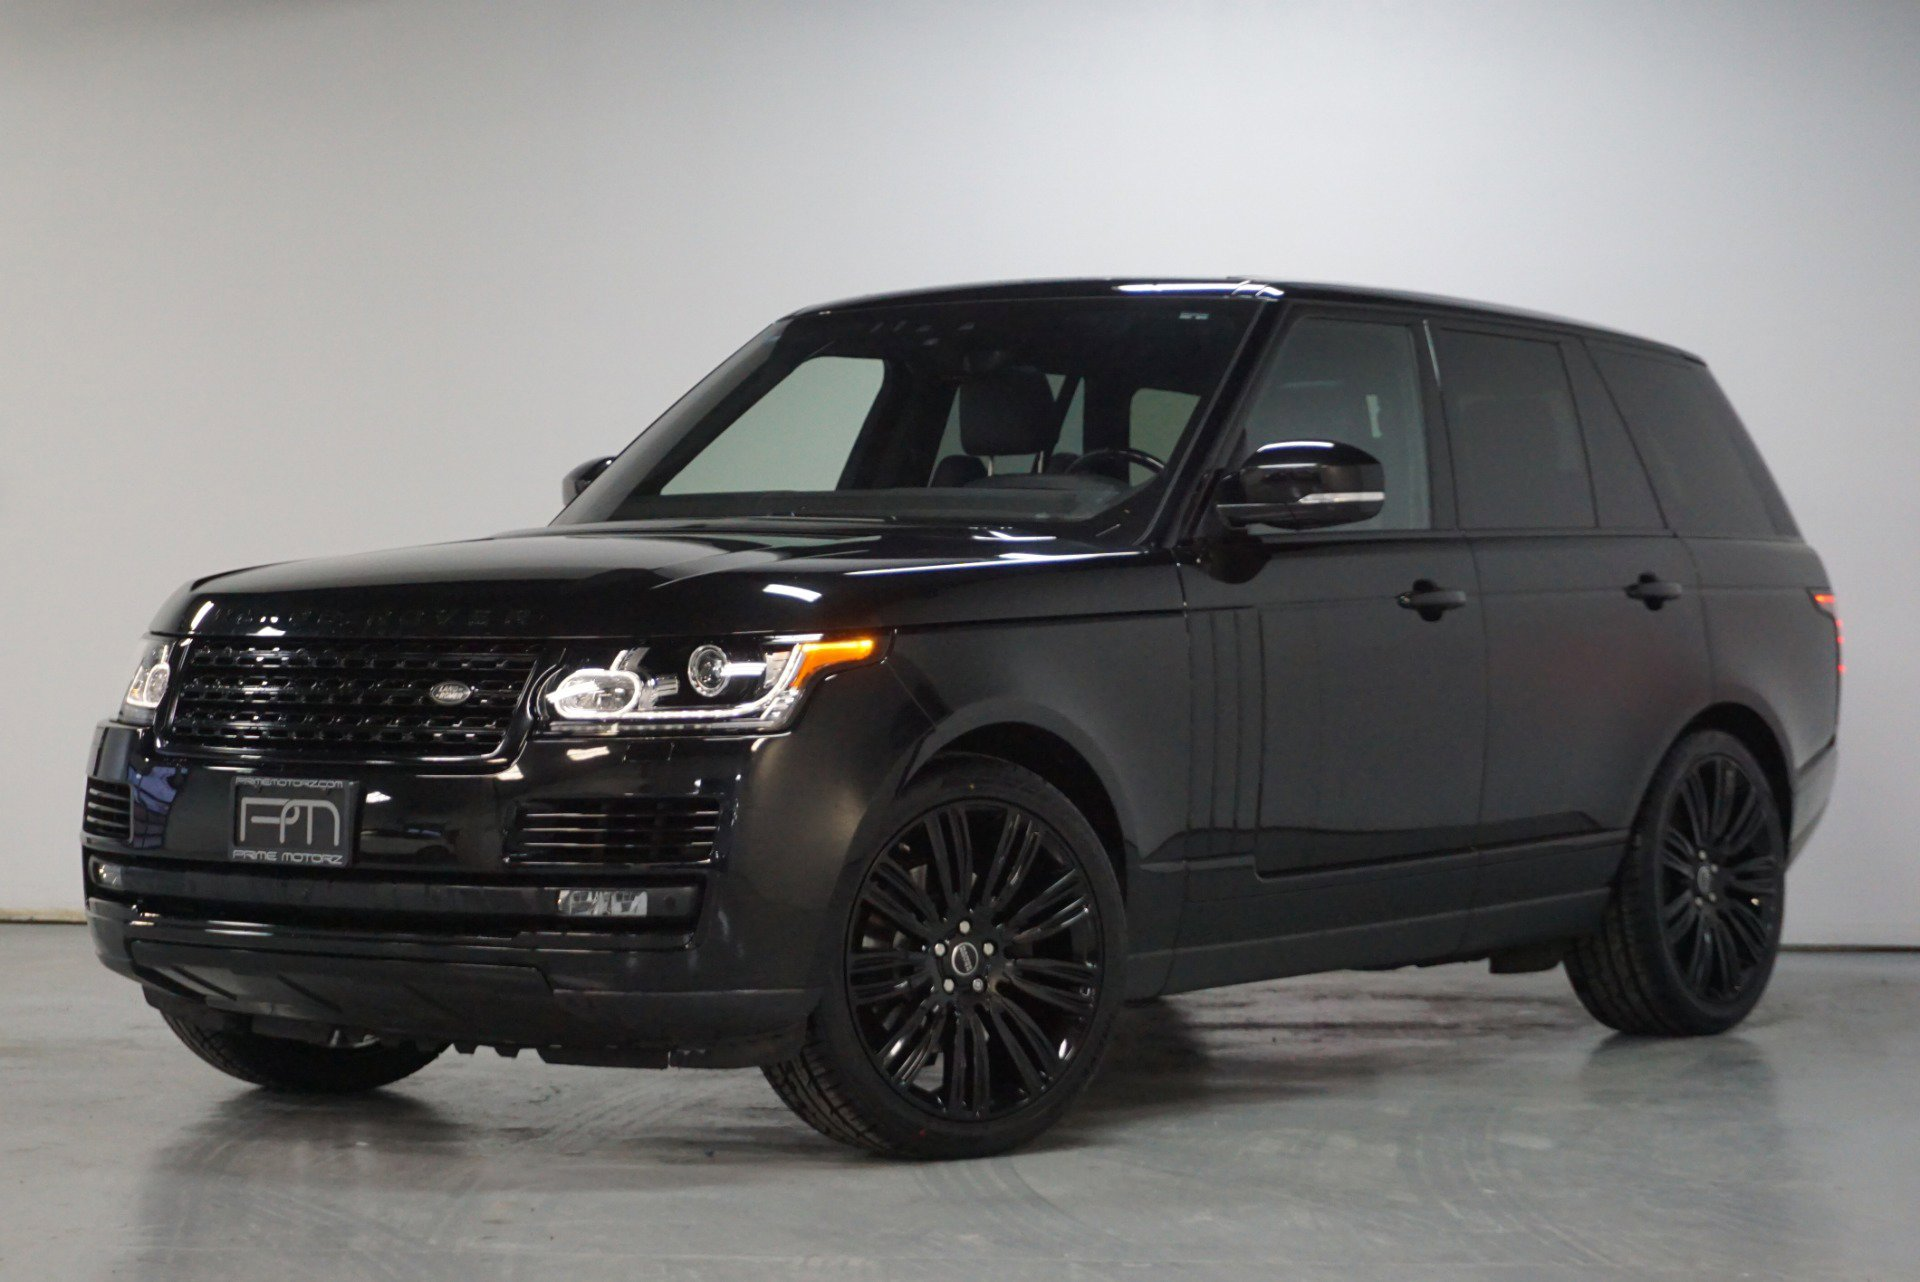 2017 Land Rover Range Rover  image